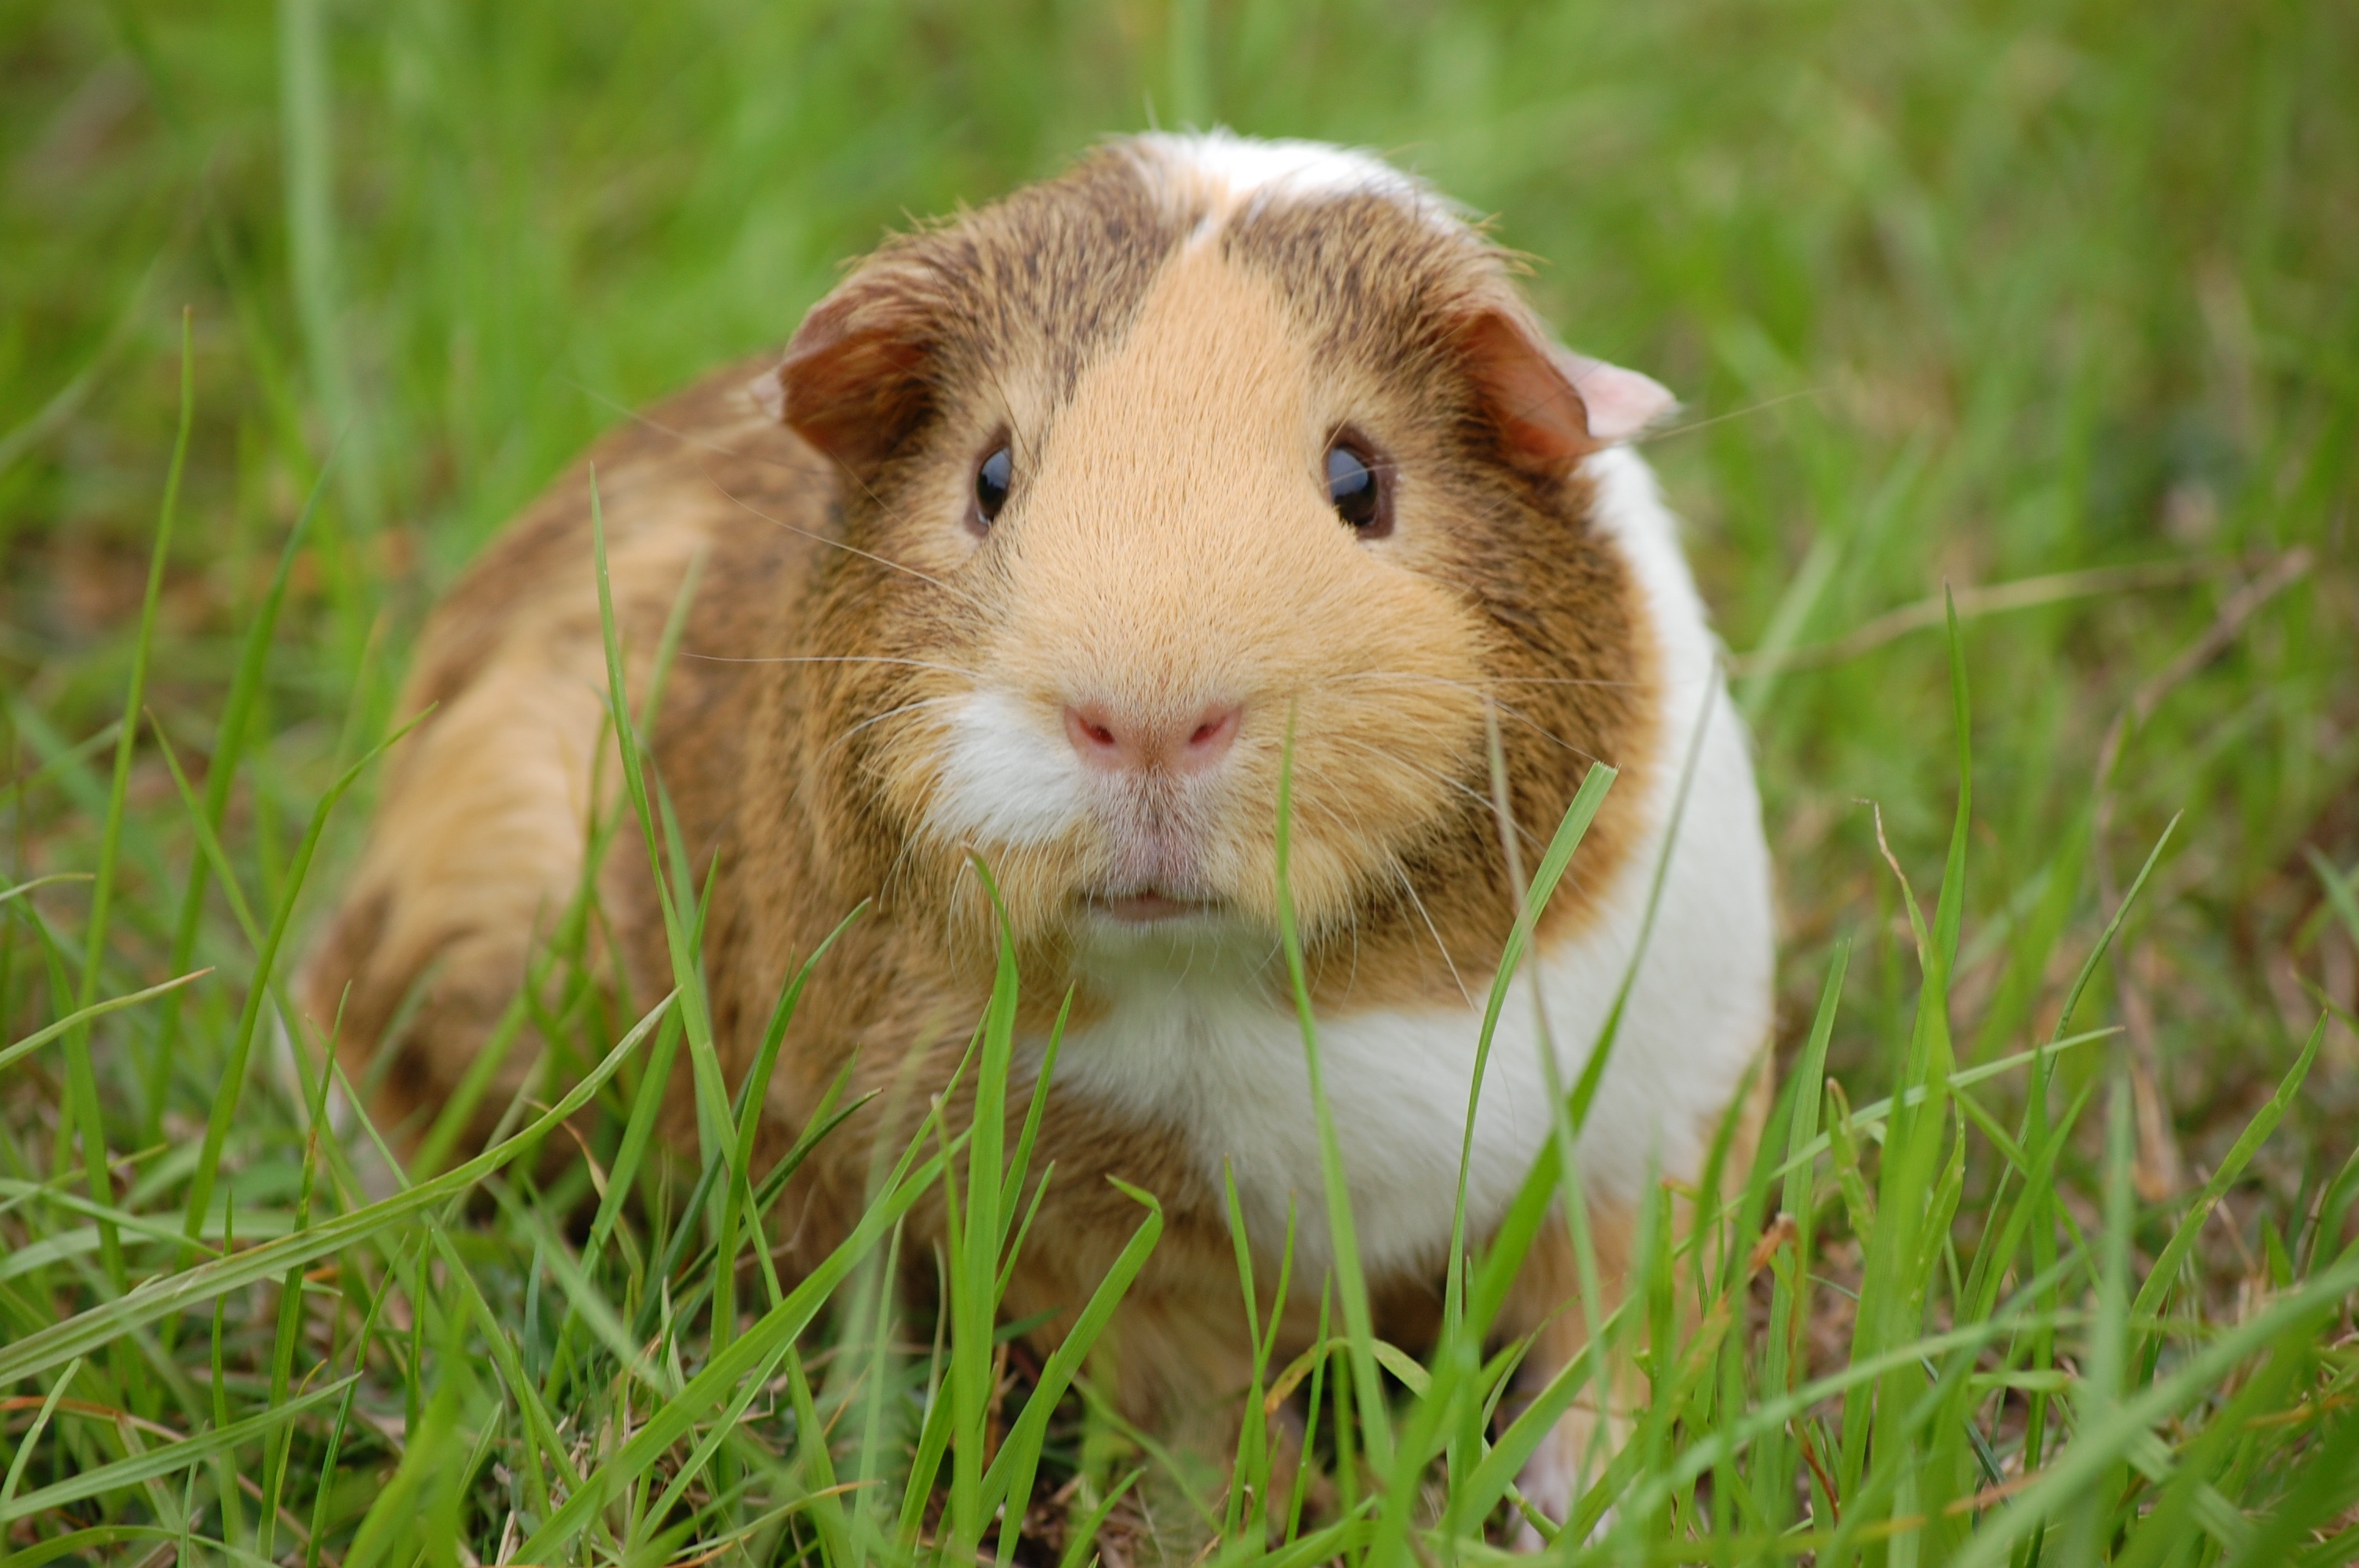 154638 download wallpaper Animals, Guinea Pig, Rodent, Grass, Spotted, Spotty screensavers and pictures for free